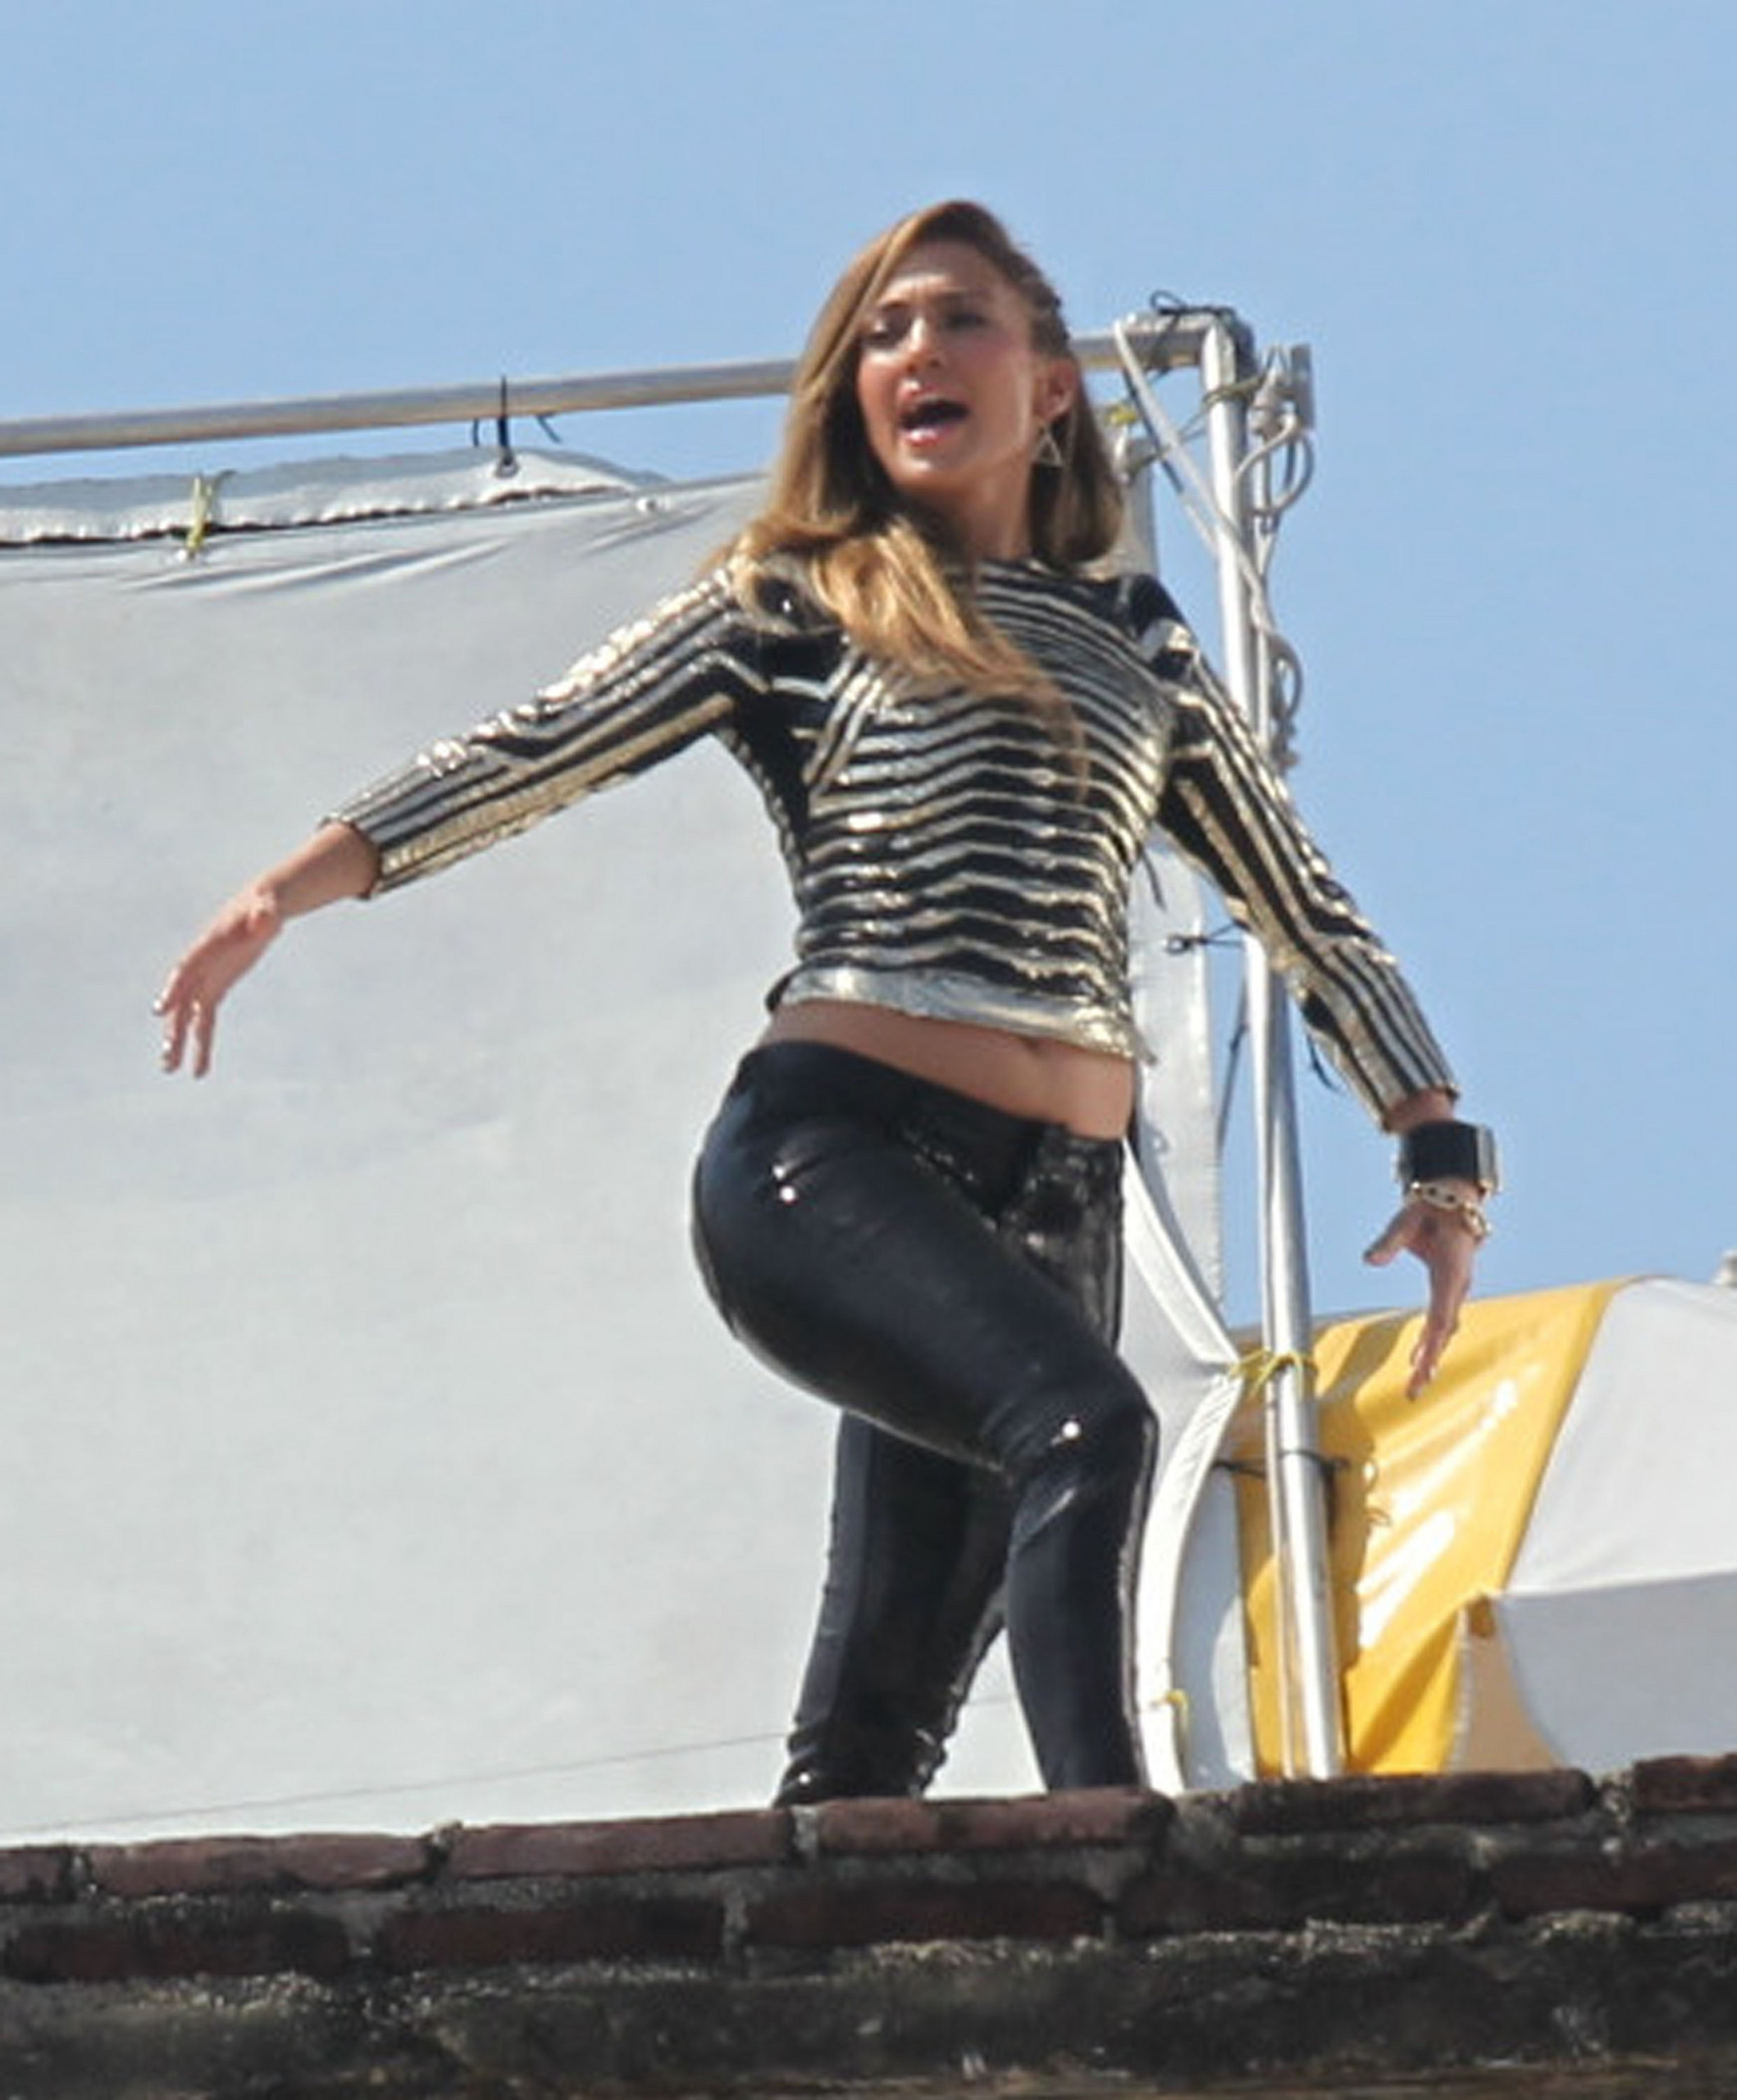 Filming A Music Video In Acapulco [11 March 2012]